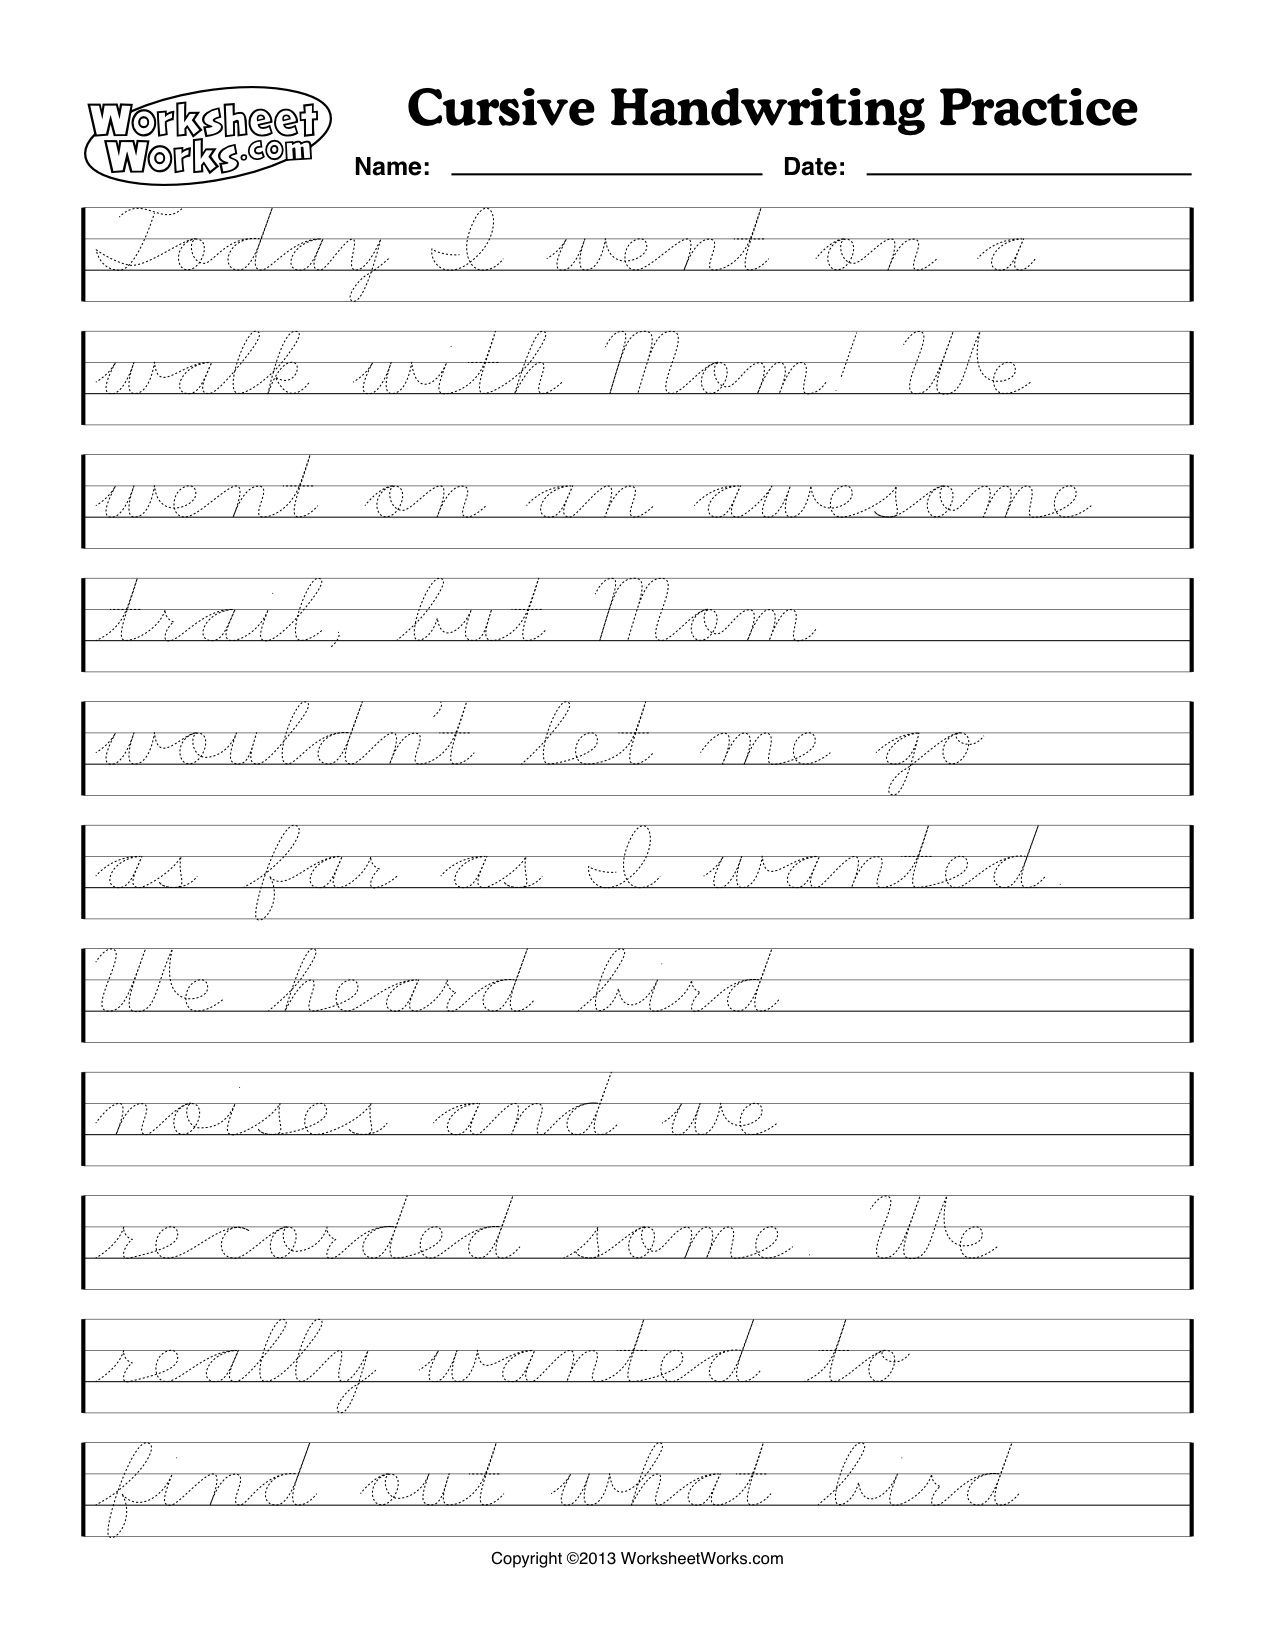 Worksheets Create Your Own Tracing Worksheets cursive handwriting worksheets writing worksheet one word english pic 18